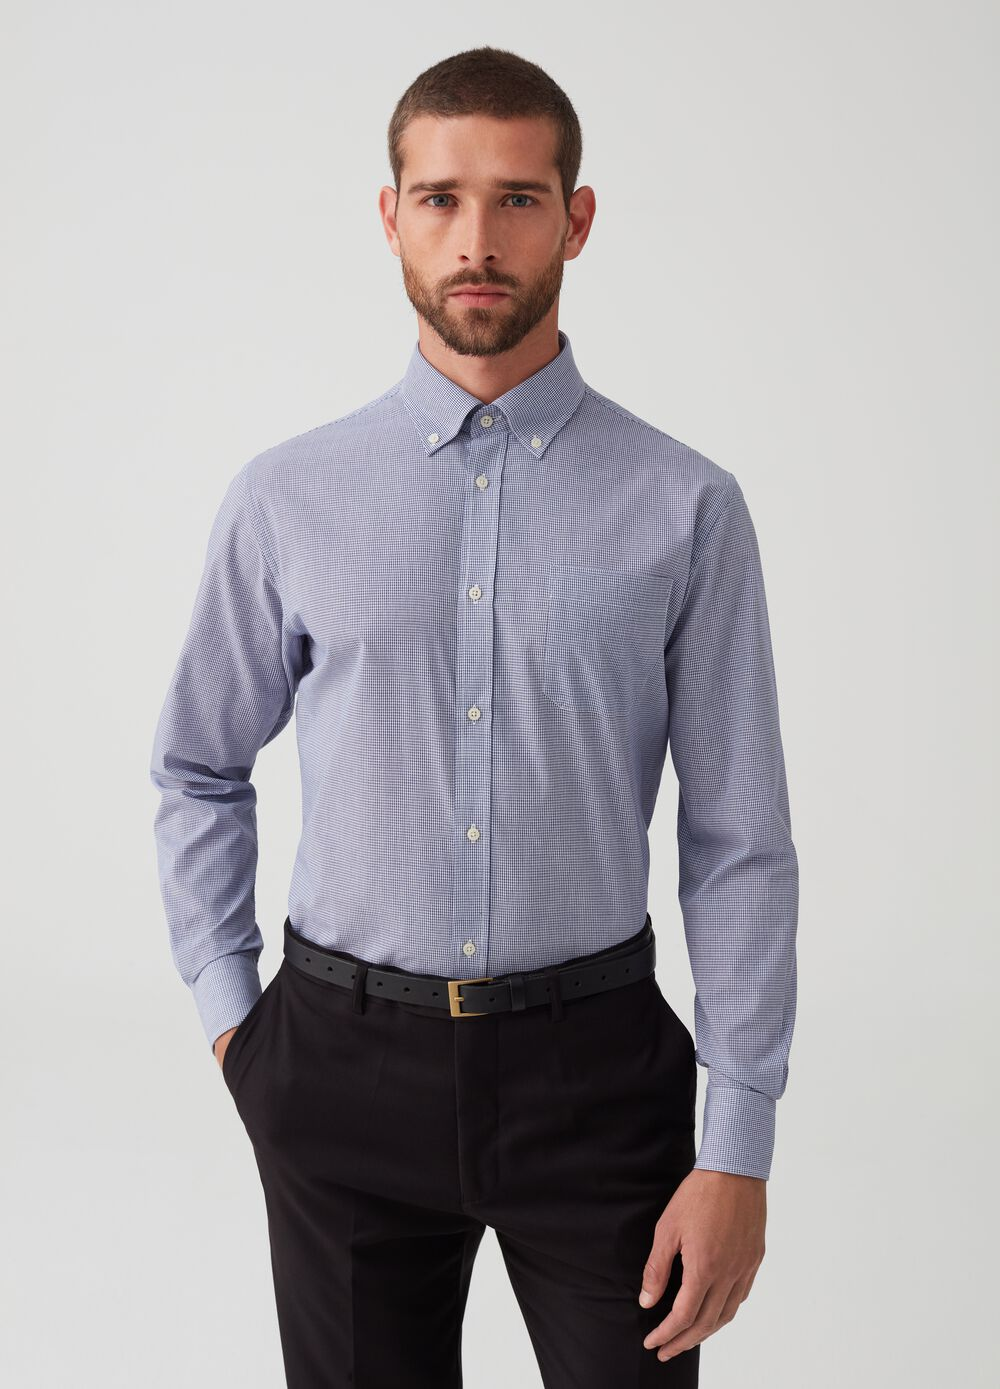 Regular fit shirt with micro check pattern